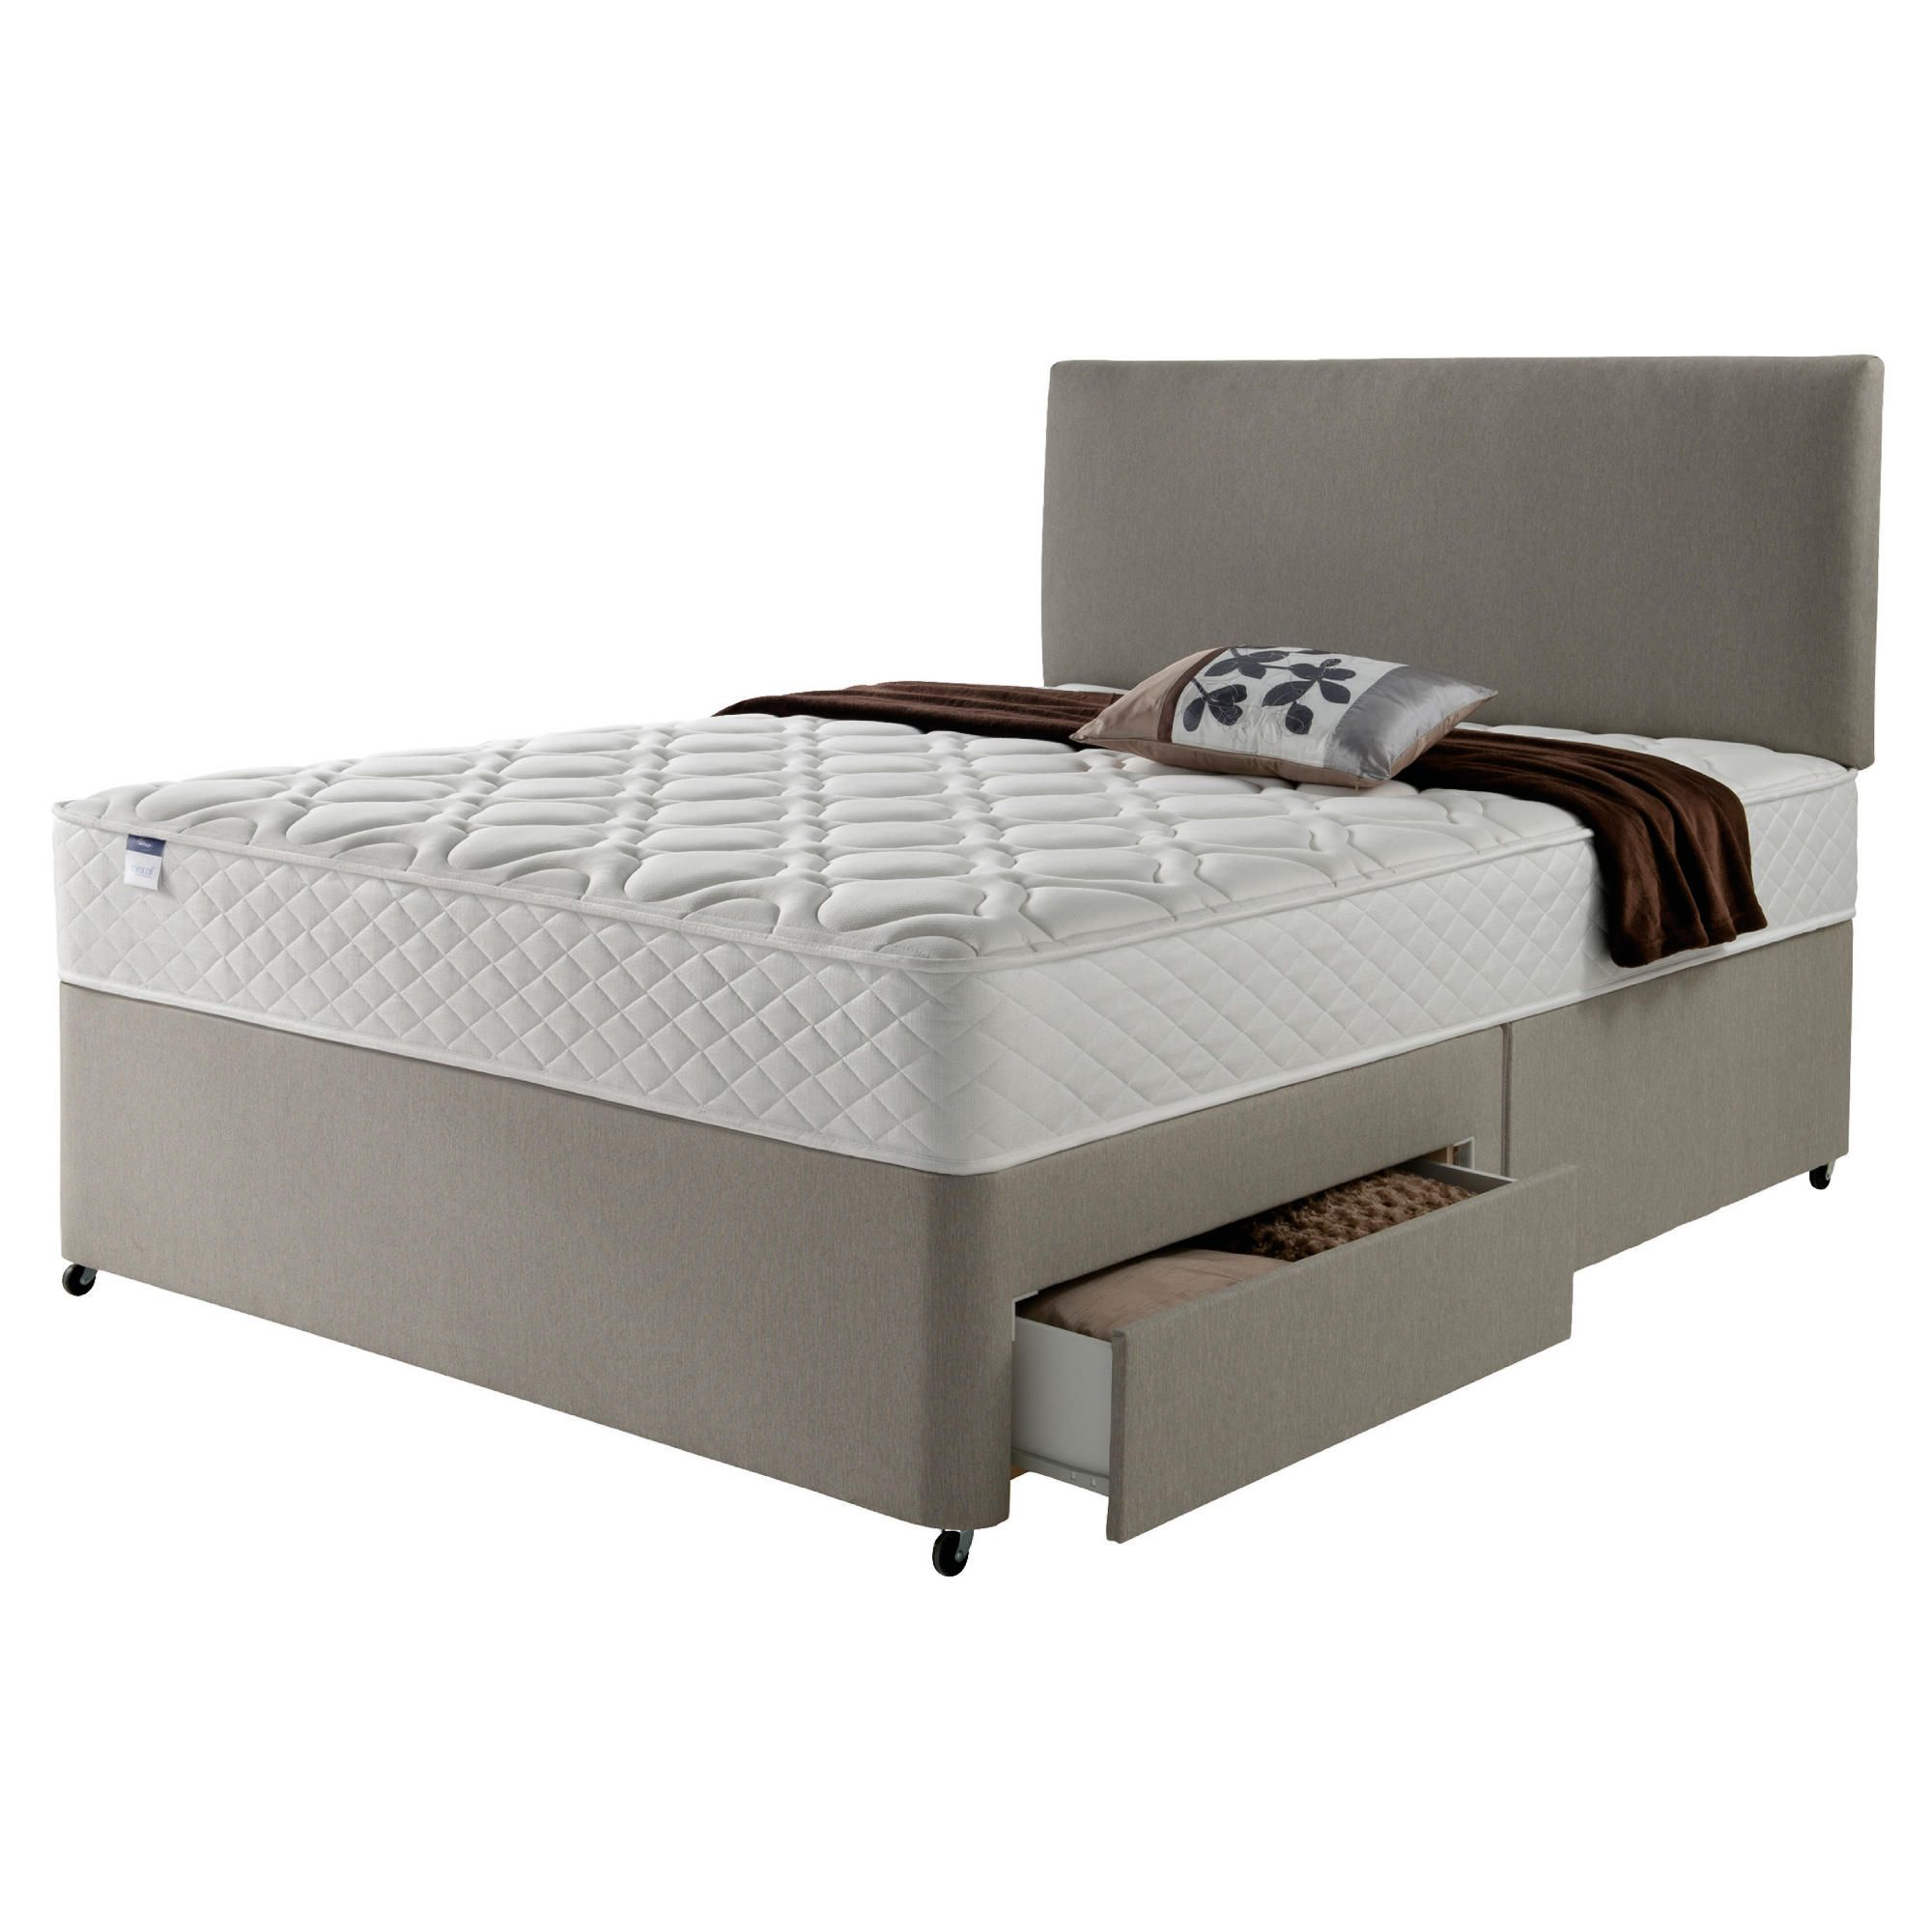 Silentnight Miracoil Luxury Micro Quilt 2 Drawer King Size Divan Mink with Headboard at Tesco Direct